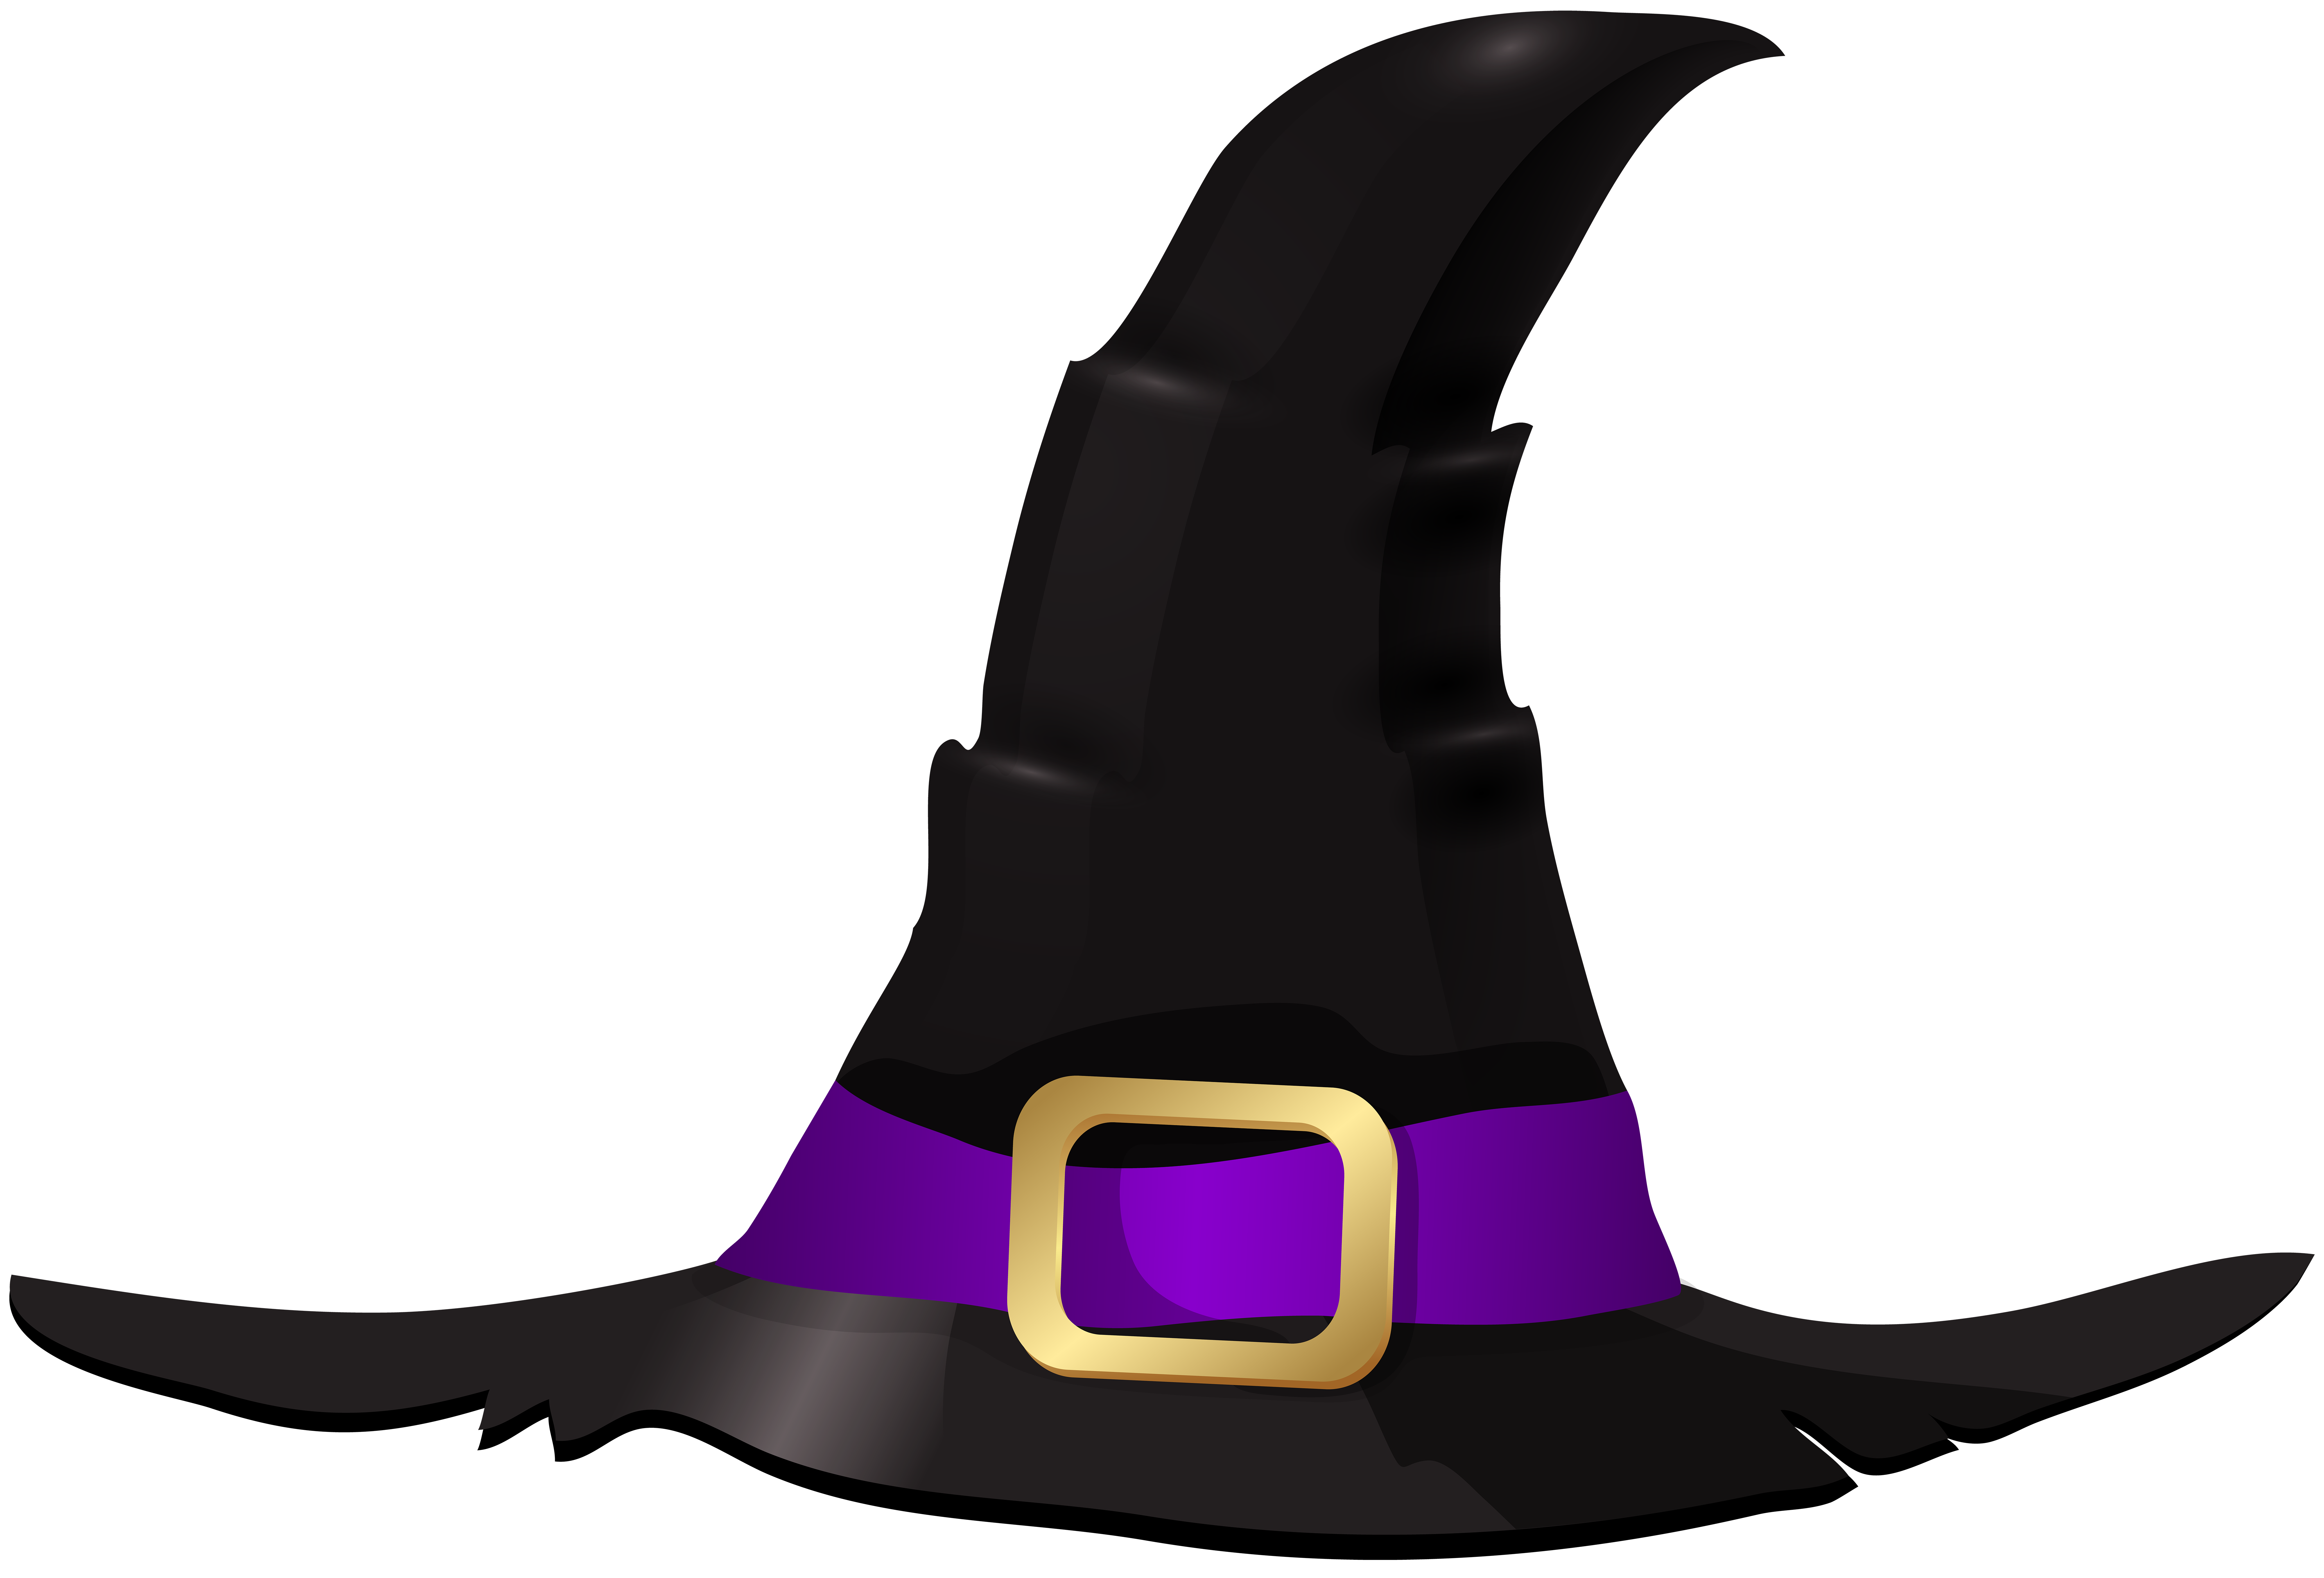 Halloween witch hat png. Clip art image gallery